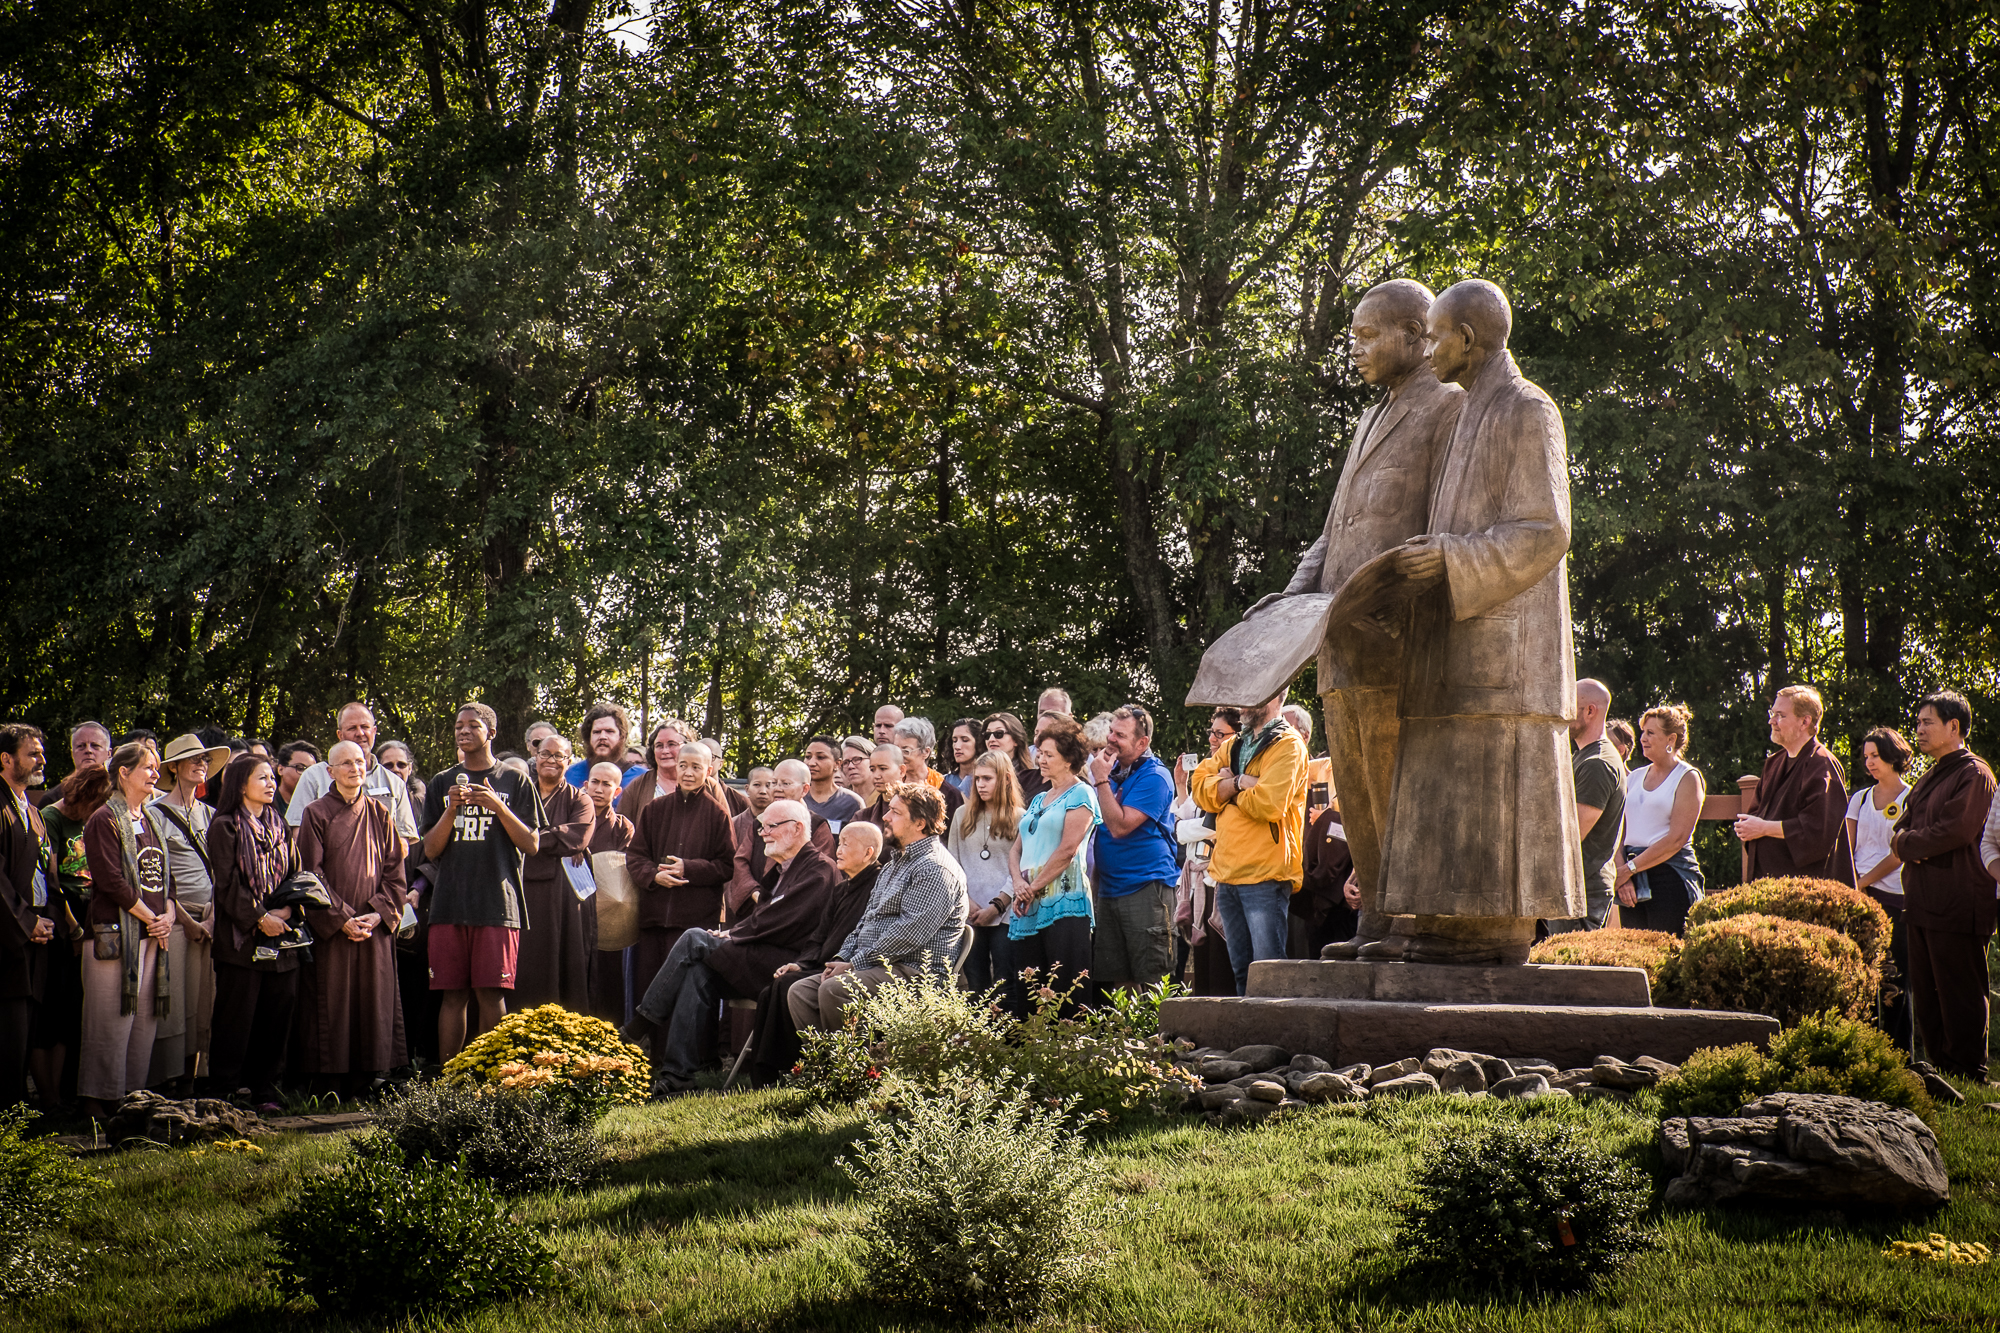 Dedication ceremony for the sculpture of Thich Nhat Hanh and Dr. Martin Luther King Jr. at Magnolia Grove Monastery. Photo by Paul Davis